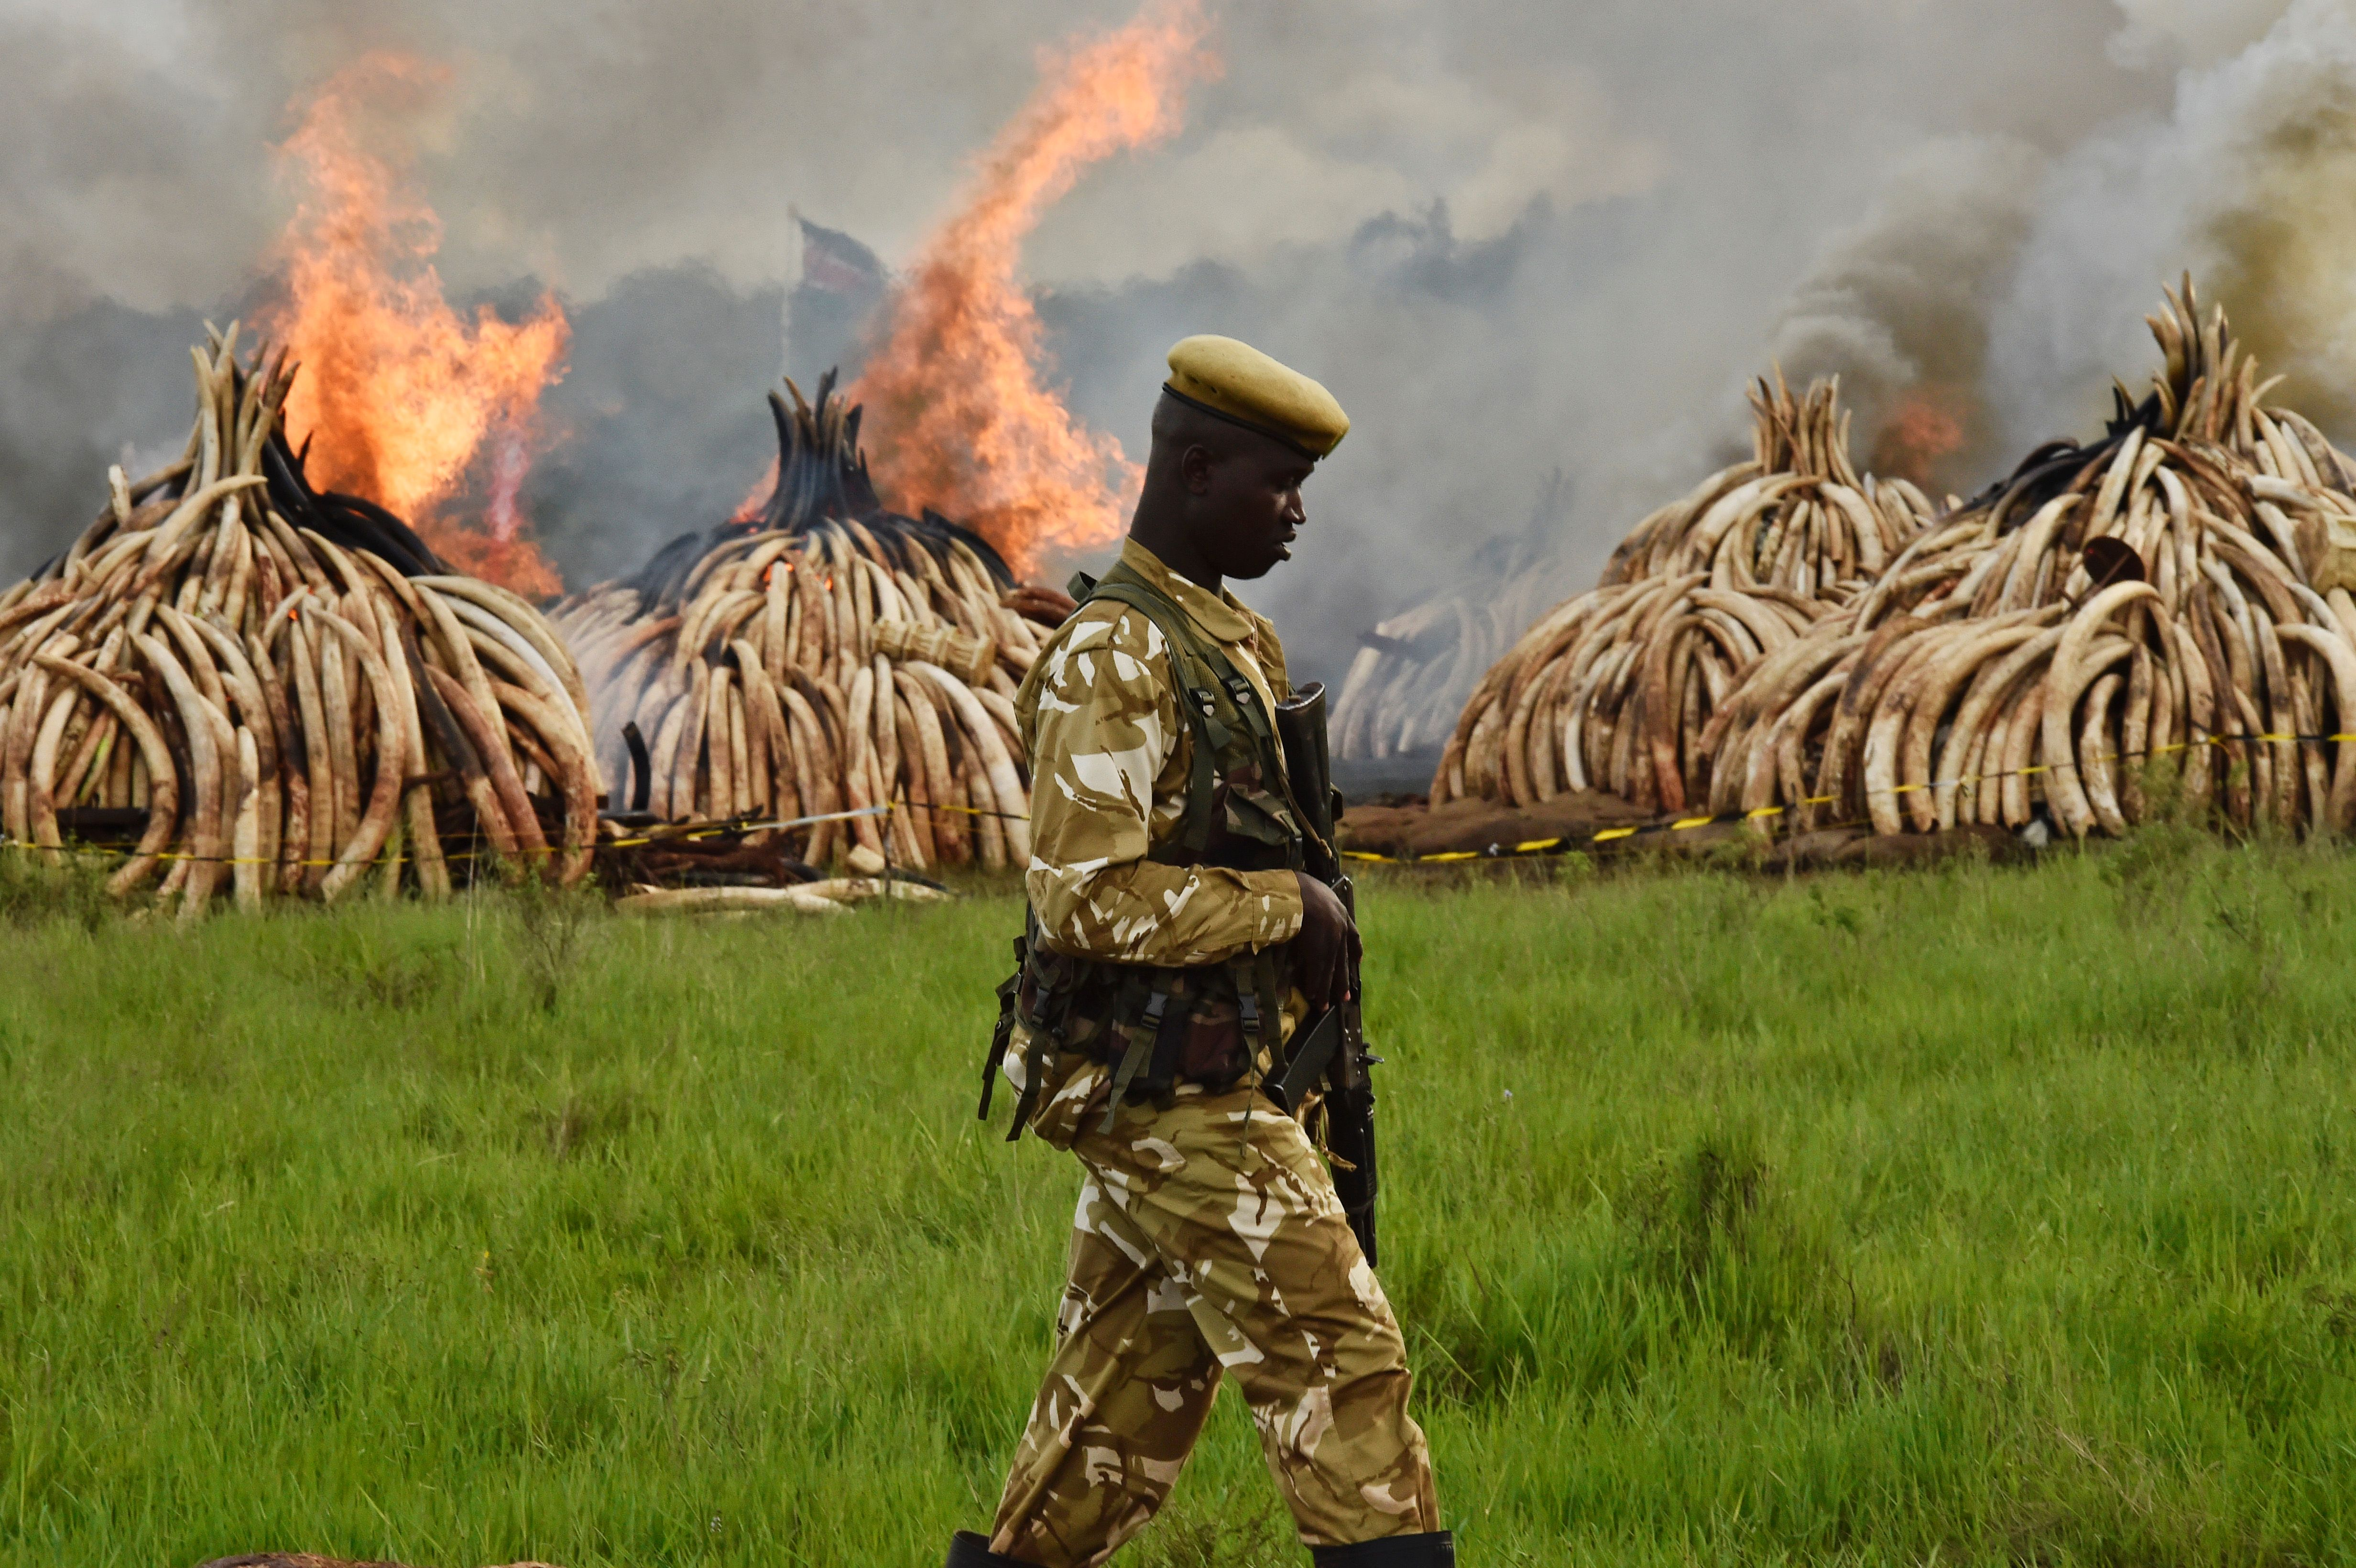 A Kenya Wildlife Services (KWS) ranger stands guard around illegal stockpiles of burning elephant tusks, ivory figurines and rhinoceros horns at the Nairobi National Park in April 2016.